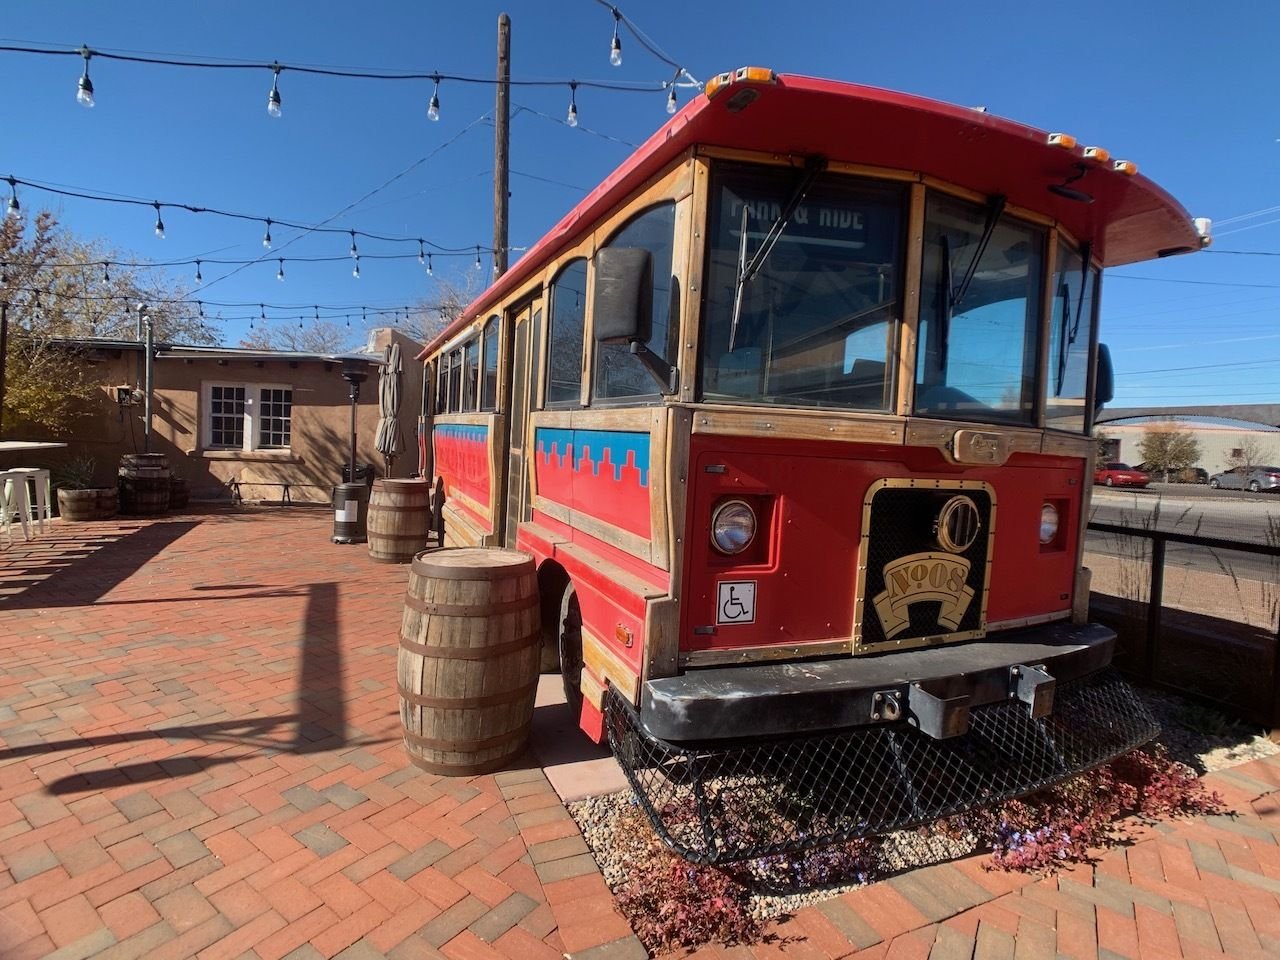 The-Painted-Lady-Bed-and-Brew-Albuquerque-Trolley-car, The Painted Lady Bed and Brew Albuquerque